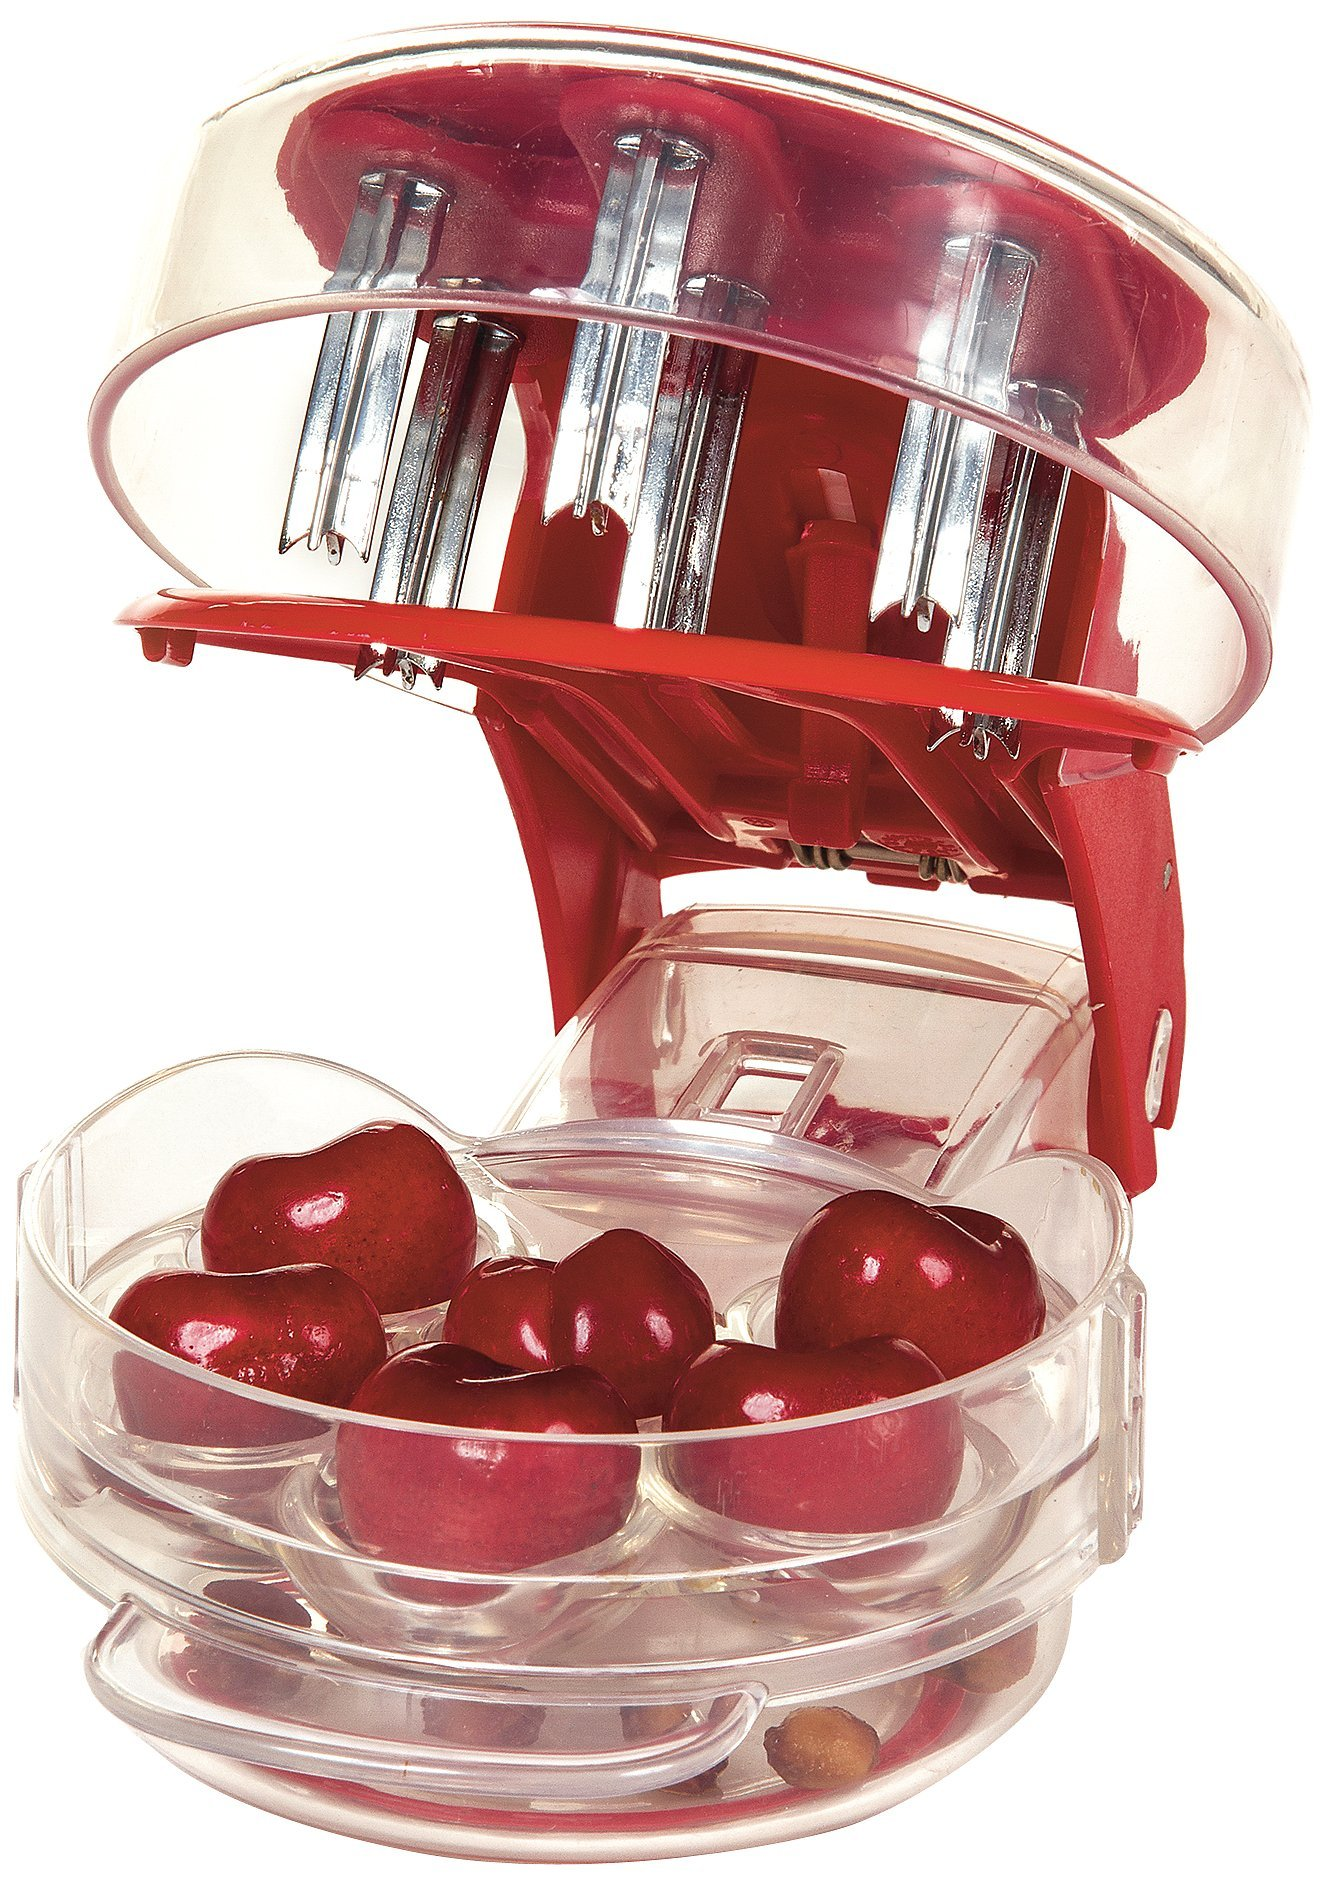 Prepworks by Progressive Cherry Pitter GPC-5100 Cherry Pitter Stoner Seed and Olive Tool Remover by Progressive